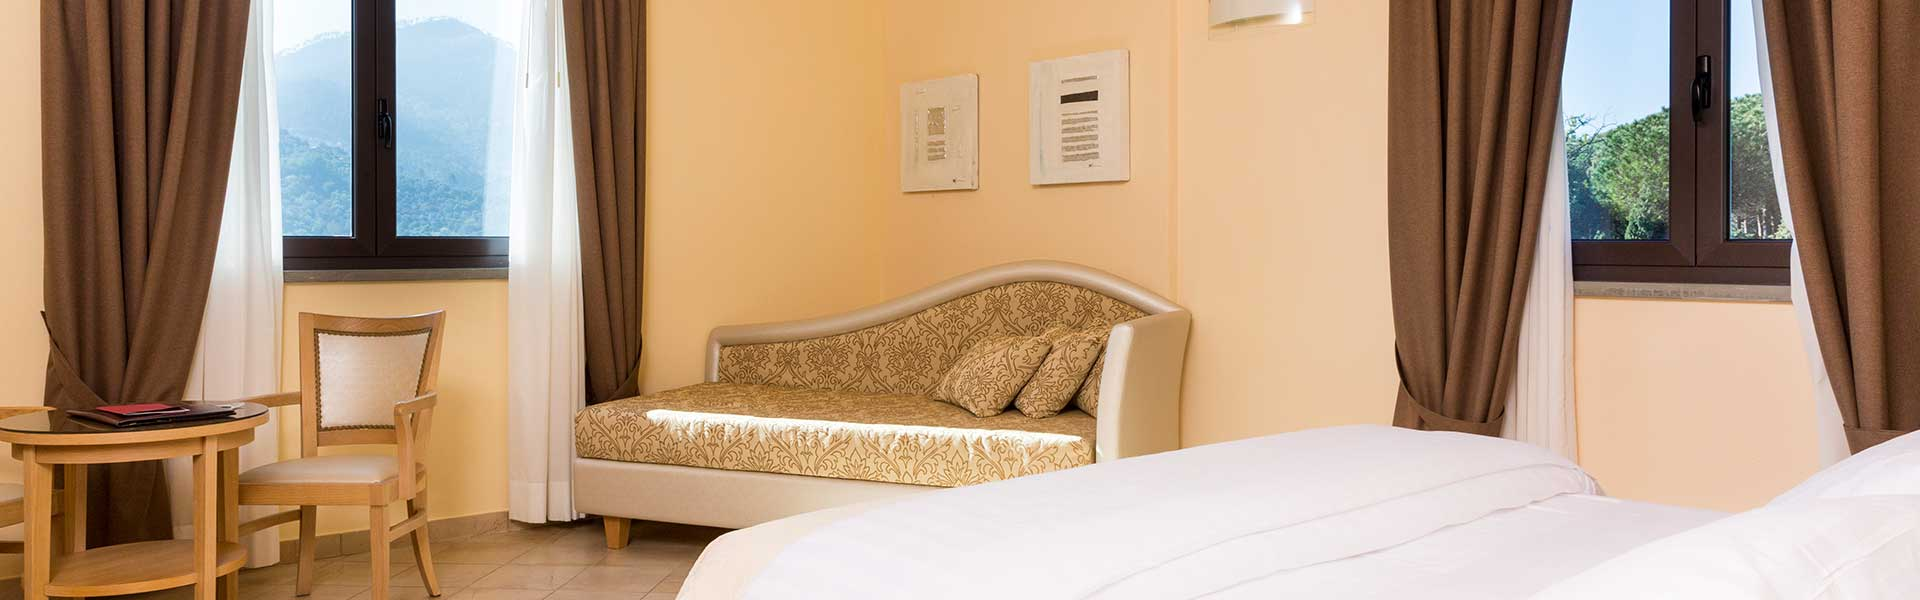 Double room without balcony by Park Hotel Argento Levanto